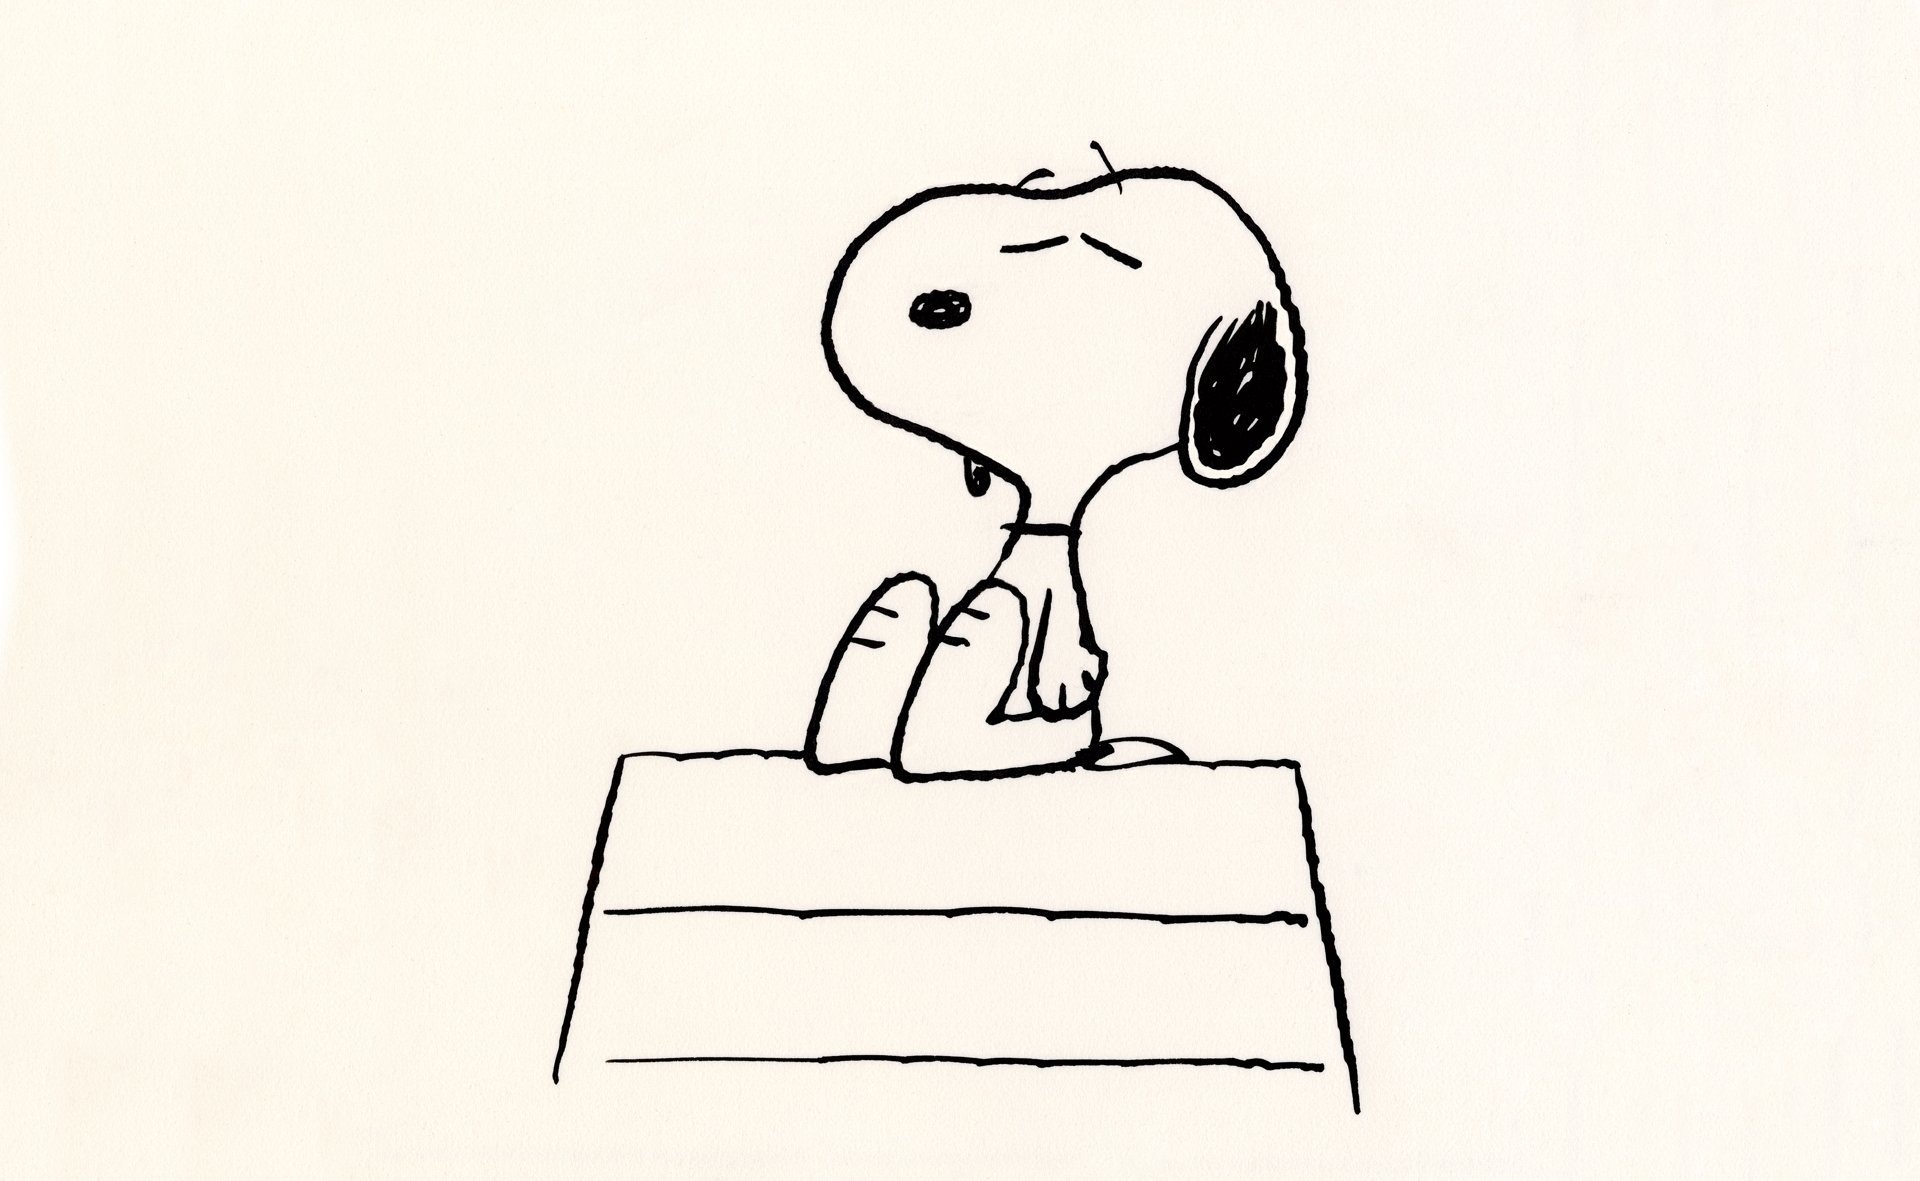 Snoopy è uno dei protagonisti principali dei Peanuts, il fumetto creato da Charles M. Schulz nel 1950. Originariamente il suo nome doveva essere Sniffy, ma questo apparteneva già ad un altro personaggio, poi Schulz pensò di chiamarlo Spike, come il suo cane, ma alla fine la scelta cadde su Snoopy ed il nome Spike fu dato al fratello di Snoopy. La sua evoluzione da semplice comparsa a personaggio principale si deve principalmente all'affetto dei lettori, che ne apprezzarono subito le 'stranezze' e l'ironia. snoopy-cult-comics-strips-cult-stories-charles-schulz-cultstories-altervista-org-dog-charlie-brown-peanuts cult stories cultstories cinema cult story cultstory art culture music ipse dixit aneddoti citazioni frasi famose aforismi immagini foto personaggi cultura musica storie facts fatti celebrità vip cult spettacoli live performance concerto photo photography celebrity giornalismo scrittura libri genio pop icon attore cantante solista pittrice scultore attrice star diva sex symbol mito 1 snoopy place 1 snoopy place santa rosa ca 2 snoopy's 3.1416 snoopy foot 4' snoopy dressed as pilgrim 5' snoopy inflatable 7-11 snoopy 3/9 7-11 snoopy pocky 7-11 snoopy碗 7-11點數 snoopy 7-eleven snoopy 8 snoopy charm bracelet 8 snoopy street nelspruit a snoopy cartoons a snoopy cat a snoopy christmas a snoopy dance a snoopy for christmas ornament a snoopy happy birthday a snoopy hug a snoopy movie a snoopy person a&w snoopy can amore è snoopy astuccio snoopy 3 zip b+ab snoopy 2015 b-58 snoopy google earth b-58a snoopy b.o snoopy big w snoopy buchla lem 4 snoopy c und a snoopy schlafanzug c&a pyjama snoopy c&a snoopy pyama c.gift shop snoopy capa moto g snoopy cc-w-snoopy centos 6 snoopy charlie brown and snoopy charlie brown e snoopy che razza è snoopy che razza é snoopy chi è snoopy chien snoopy à tirer choro q snoopy choro q snoopy collection cineblog01 snoopy coach and snoopy coach snoopy 9 นิ้ว cosa è snoopy cover iphone 4 snoopy cover iphone 5 snoopy custodia iphone 5 snoopy custodia iphone 6 snoopy d&r snoopy elo 7 snoopy f-104 snoopy sniper f/v snoopy fisher price snoopy france 3 snoopy g pen snoop dogg g-dragon snoopy g-shock snoopy gioco wii u snoopy guarderia snoopy 8 sevilla h&m snoopy h&m snoopy baby h&m snoopy jumper h&m snoopy pizsama h&m snoopy pyjamas h&m snoopy t shirt h&m snoopy uk havaianas snoopy r$ iluv iphone 6 snoopy case images of snoopy instax mini 8 snoopy iphone 5 snoopy iphone 5 snoopy case iphone 5 snoopy wallpaper iphone 6 snoopy iphone 6 snoopy case iphone 6 snoopy cases iphone 6 snoopy cover iphone 6 snoopy wallpaper j dilla snoopy j like snoopy j love snoopy j.snoopy91 jay z snoopy jay z snoopy track jay z snoopy track download jay z snoopy track instrumental jay z snoopy track lyrics jay z snoopy track mp3 jay z snoopy track mp3 download jay z snoopy track rap genius jay z snoopy track youtube joe cool snoopy josh snoopy b k way snoopy l like snoopy l love snoopy l'amicizia snoopy l'amico di snoopy l'angelo snoopy l'impareggiabile snoopy l'uccellino di snoopy la felicità è snoopy lionel snoopy g gauge m&g snoopy m&s snoopy m_snoopy mini 8 snoopy nutella snoopy 1 kg o snoopy filme o snoopy é de que raça p 2252 snoopy p.snoopy pigiama snoopy h&m pizzeria snoopy 2 toscanella playstation 4 snoopy playstation 4 snoopy's grand adventure ps4 snoopy 2 players pyjama snoopy c&a q transformers snoopy que perro es snoopy que raza es snoopy quem é snoopy snoop d o double gizzle snoop dogg snoopy snoopy & friends snoopy 0.2.1 snoopy 007 snoopy 01 snoopy 08 snoopy 08 twitter snoopy 1 snoopy 1 aprile snoopy 1 blimp snoopy 1 febbraio snoopy 1 maggio snoopy 1 puntata snoopy 1.bölüm izle snoopy 1950 snoopy 1958 snoopy 1958 united feature syndicate inc snoopy 1960 snoopy 1966 united feature syndicate snoopy 1970 snoopy 1972 snoopy 1980 snoopy 2 snoopy 2 bologna snoopy 2 bologna menu snoopy 2 charters snoopy 2 film snoopy 2 giugno snoopy 2 mentana snoopy 2 toscanella snoopy 2 toscanella di dozza snoopy 2000 snoopy 2000 ottaviano snoopy 2015 movie snoopy 2015 trailer snoopy 2016 snoopy 2017 snoopy 25 aprile snoopy 3 snoopy 3 castegnato snoopy 3 day weekend snoopy 3 ring binder snoopy 3d snoopy 3d film snoopy 3d model snoopy 3d movie snoopy 3d movie trailer snoopy 3d print snoopy 3d trailer snoopy 3ds snoopy 3ds game snoopy 3ds review snoopy 4 snoopy 4 of july snoopy 4 paws snoopy 4 peanuts snoopy 4 tractor pulling snoopy 40 anni snoopy 409 snoopy 40th birthday snoopy 420 snoopy 47 street snoopy 4th of july snoopy 4th of july clipart snoopy 4th of july images snoopy 4th of july t-shirt snoopy 5 snoopy 5 cents snoopy 5 more minutes snoopy 5&33 snoopy 50 snoopy 50 anni snoopy 50 years snoopy 50th anniversary snoopy 50th anniversary ornament snoopy 50th birthday snoopy 50th birthday card snoopy 5k snoopy 6 friends snoopy 6 panel snoopy 60 evler snoopy 60th anniversary snoopy 65 snoopy 65 anni snoopy 65 años snoopy 65 birthday snoopy 65th snoopy 65th anniversary snoopy 7 days of the week snoopy 7-11 snoopy 70s snoopy 70s shirt snoopy 720p izle snoopy 720p latino snoopy 747 snoopy 77 snoopy 7net snoopy 8 snoopy 8 bit snoopy 8 bits snoopy 8 marzo snoopy 8 sevilla snoopy 80 snoopy 80 bitritto snoopy 80 transverter snoopy 80s snoopy 84 snoopy 89 snoopy 9 snoopy 9/11 snoopy 909 mendoza snoopy 90cm snoopy 90s snoopy 9400 oakland snoopy 9gag snoopy a bathing ape snoopy abbraccio snoopy aforismi snoopy al mare snoopy amicizia snoopy amore snoopy and belle snoopy and charlie snoopy and friends snoopy and peanut snoopy anni 80 snoopy arezzo snoopy arrabbiato snoopy auguri snoopy aviatore snoopy b snoopy b+ab snoopy b-58 snoopy bacio snoopy bday snoopy bday images snoopy blue 97 bars lyrics snoopy bollate snoopy breast snoopy brescia snoopy buon compleanno snoopy buona giornata snoopy buona serata snoopy buonanotte snoopy buonanotte immagini snoopy buongiorno snoopy c 130 snoopy c gift snoopy c&a snoopy c'est loin l'amérique snoopy c64 snoopy caffè snoopy cartoleria snoopy cartone snoopy casa snoopy che balla snoopy che dorme snoopy che ride snoopy come home 01 snoopy compleanno snoopy con cuore snoopy cuore snoopy d day snoopy d&r snoopy d-day cartoon snoopy d.j. - another love snoopy da colorare snoopy dance snoopy danzare è vivere snoopy de nieve snoopy de óculos snoopy dieta snoopy discoteca snoopy disegno snoopy divertente snoopy do double g snoopy domenica snoopy dorme snoopy dottore snoopy drop level 98 snoopy ds3 snoopy e fifi snoopy e friends snoopy e friends il film dei peanuts snoopy e friends streaming snoopy e i suoi amici snoopy e il lavoro snoopy e l'amicizia snoopy e l'amore snoopy e la befana snoopy e la felicità snoopy e la primavera snoopy e la vita snoopy e le donne snoopy e linus snoopy e lucy snoopy e mafalda snoopy e woodstock snoopy e woodstock immagini snoopy ei peanuts snoopy estate snoopy f snoopy facebook snoopy felice snoopy felicità è snoopy film snoopy flos snoopy forever snoopy frasi snoopy frasi amicizia snoopy frasi amore snoopy frasi celebri snoopy fumetti snoopy g snoopy g gauge train set snoopy g my way snoopy g nula snoopy gadget snoopy gatto snoopy gavirate snoopy gelateria snoopy gelato snoopy gif snoopy gift snoopy gioia snoopy giovedi snoopy golf snoopy h&m snoopy h&m shirt snoopy happy snoopy happy birthday snoopy happy birthday gif snoopy happy easter snoopy heart snoopy ho avuto una settimana terribile snoopy ho voglia di te snoopy holiday snoopy hug snoopy hugs snoopy i charlie brown snoopy i hate mondays snoopy i love you snoopy i love you images snoopy i love you pictures snoopy i miss you snoopy i miss you images snoopy i surrender snoopy i'm happy snoopy i'm sorry snoopy il film snoopy immagini snoopy immagini buonanotte snoopy immagini buongiorno snoopy in macchina snoopy in vacanza snoopy in viaggio snoopy incazzato snoopy innamorato snoopy italiano snoopy j snoopy j blimp snoopy j twitter snoopy j'aime qu'on m'aime snoopy j.d.o.o snoopy jacket snoopy japan snoopy japan online store snoopy jazz snoopy joe cool images snoopy joe cool t shirt snoopy joe falchetto snoopy jogging snoopy johnny sax snoopy juventino snoopy k snoopy k cineplex snoopy karate snoopy kawaii snoopy keep looking up snoopy kenny random snoopy kiss snoopy kiss lucy snoopy kisses snoopy kisses lucy snoopy kissing snoopy kissing lucy snoopy l snoopy l'amico perfetto snoopy l'amore snoopy la vita è un circo snoopy laurea snoopy laureato snoopy lavoro snoopy letto snoopy libro snoopy linus snoopy lo sfida in immaginari duelli snoopy love snoopy lucy snoopy lunedì snoopy mafalda snoopy maggio snoopy mare snoopy martedi snoopy matrimonio snoopy medico snoopy mercoledì snoopy modena snoopy movie snoopy musica snoopy n snoopy n charlie brown peanuts snoopy n woody roots snoopy na budzie snoopy nanna snoopy napoli snoopy napoli via casanova snoopy nervoso snoopy neve snoopy night snoopy nostalgia snoopy notte snoopy notte buia e tempestosa snoopy nutella snoopy o filme snoopy o filme completo snoopy o filme dublado snoopy o filme estreia snoopy o filme online snoopy o filme trailer snoopy occhiali snoopy oggi snoopy ok snoopy omega snoopy on charlie brown snoopy onomastico snoopy ora legale snoopy orari snoopy orzinuovi snoopy ospedale snoopy ottimista snoopy p snoopy p colorir snoopy pasqua snoopy per whatsapp snoopy personaggi snoopy pilota snoopy pioggia snoopy pizza snoopy pizza grumolo snoopy pizzeria snoopy primavera snoopy ps4 snoopy pub snoopy q snoopy q significa snoopy qualiano snoopy que raza de perro es snoopy que raza es snoopy quilt snoopy quiz snoopy quote snoopy quotes snoopy quotes about friendship snoopy quotes be yourself snoopy quotes on happiness snoopy quotes on love snoopy quotes with pictures snoopy r snoopy r34 snoopy rain snoopy razza snoopy rc airplane snoopy red baron snoopy relax snoopy ridere snoopy ringrazia snoopy ristorante snoopy risveglio snoopy roma snoopy romantico snoopy s girlfriend snoopy s valentino snoopy sabato snoopy scout snoopy scrittore snoopy scrivere è un lavoro duro snoopy serina snoopy sm-91 snoopy sn 012 snoopy sonno snoopy sport snoopy spring snoopy stanco snoopy streaming snoopy strisce snoopy t snoopy t shirt snoopy t shirt ebay snoopy t shirt mens snoopy t shirts amazon snoopy t shirts ebay snoopy t-shirt amazon snoopy t.o snoopy tarquinia snoopy tattoo snoopy tennis snoopy tennista snoopy ti asmo snoopy traduzione snoopy triste snoopy triste immagini snoopy tristezza snoopy trophy snoopy u snoopy u cinestaru snoopy ubriaco snoopy uccellino snoopy un giorno dovremo morire snoopy un giorno moriremo snoopy un'intera montagna di ricordi snoopy uncinetto snoopy uncinetto schema snoopy uniqlo snoopy uovo snoopy uovo di pasqua snoopy v snoopy v kinach snoopy v kinu snoopy v red baron christmas snoopy v red baron song snoopy v red baron youtube snoopy v the red baron lyrics snoopy v-class snoopy v.s. the red baron snoopy vacanze snoopy venerdi snoopy vespa snoopy viaggiatore snoopy viaggio snoopy video snoopy vignette snoopy vignette amore snoopy vignette buongiorno snoopy világhírű író lesz snoopy vita snoopy vs red baron snoopy w heart snoopy w kinach snoopy w kinie snoopy w polsce snoopy w świecie magii snoopy wallpaper snoopy wedding snoopy weekend snoopy wii u snoopy wikipedia snoopy wikiquote snoopy woodstock snoopy woodstock images snoopy woodstock love snoopy writer snoopy x lacoste snoopy x vans snoopy x whatsapp snoopy xbox snoopy xbox 360 snoopy xbox 360 game snoopy xbox game snoopy xbox one snoopy xbox-984 snoopy xmas snoopy xmas cards snoopy xmas decorations snoopy xmas pictures snoopy xmas song snoopy y carlitos snoopy y charlie brown snoopy y charlie brown en español snoopy y charlie brown la película snoopy y charlie brown peanuts snoopy y charlie brown peanuts la película snoopy y charlie brown peanuts la película online snoopy y sus amigos snoopy y sus amigos la pelicula snoopy yawning snoopy yoga snoopy youtube snoopy youtube italiano snoopy youtube video snoopy z snoopy zaino snoopy zamboni snoopy zamboni t shirt snoopy zara snoopy zen snoopy zerbino snoopy zippo snoopy zocca snoopy zombie snoopy zzz snoopy à bordeaux snoopy à colorier snoopy à coudre snoopy à dessiner snoopy à imprimer snoopy à l'école snoopy à la plage snoopy à partir de quel age snoopy à partir de quel âge snoopy à vendre snoopy è il tuo cane charlie brown snoopy è maschio o femmina snoopy è un snoopy è un beagle snoopy è un bracco snoopy è un bracco o un beagle snoopy è un bull terrier snoopy è un mistero charlie brown snoopy é americano snoopy é da disney snoopy é de qual raça snoopy é magica charlie brown snoopy é o que snoopy é que raça de cachorro snoopy é um misterio snoopy é un beagle snoopy és a halloween snoopy és a húsvéti kutya snoopy és charlie brown snoopy és charlie brown - a peanuts film snoopy és charlie brown - a peanuts film online snoopy és charlie brown előzetes snoopy és charlie brown online snoopy és charlie brown teljes film snoopy óra snoopy új film snoopy's christmas snoopy's d snoopy's fair snoopy's reunion snoopy's street fair snoopy's town snoopy's town tale snoopy's' grand adventure snoopy0_0 snoopy_0429 snoopy_0711 snoopy_777 snoopymania snoopyo_o snoopyp_q spooby t rex t shirt snoopy tecfrigo snoopy q vitamina f snoopy wii u snoopy wii u snoopy game wii u snoopy review wii u snoopy trailer wii u snoopy walkthrough wii u snoopy's grand adventure windows 7 snoopy windows 7 snoopy theme woodstock and snoopy woodstock e snoopy world war 1 snoopy xbox 360 snoopy xmas snoopy è venerdì snoopy http://cultstories.altervista.org